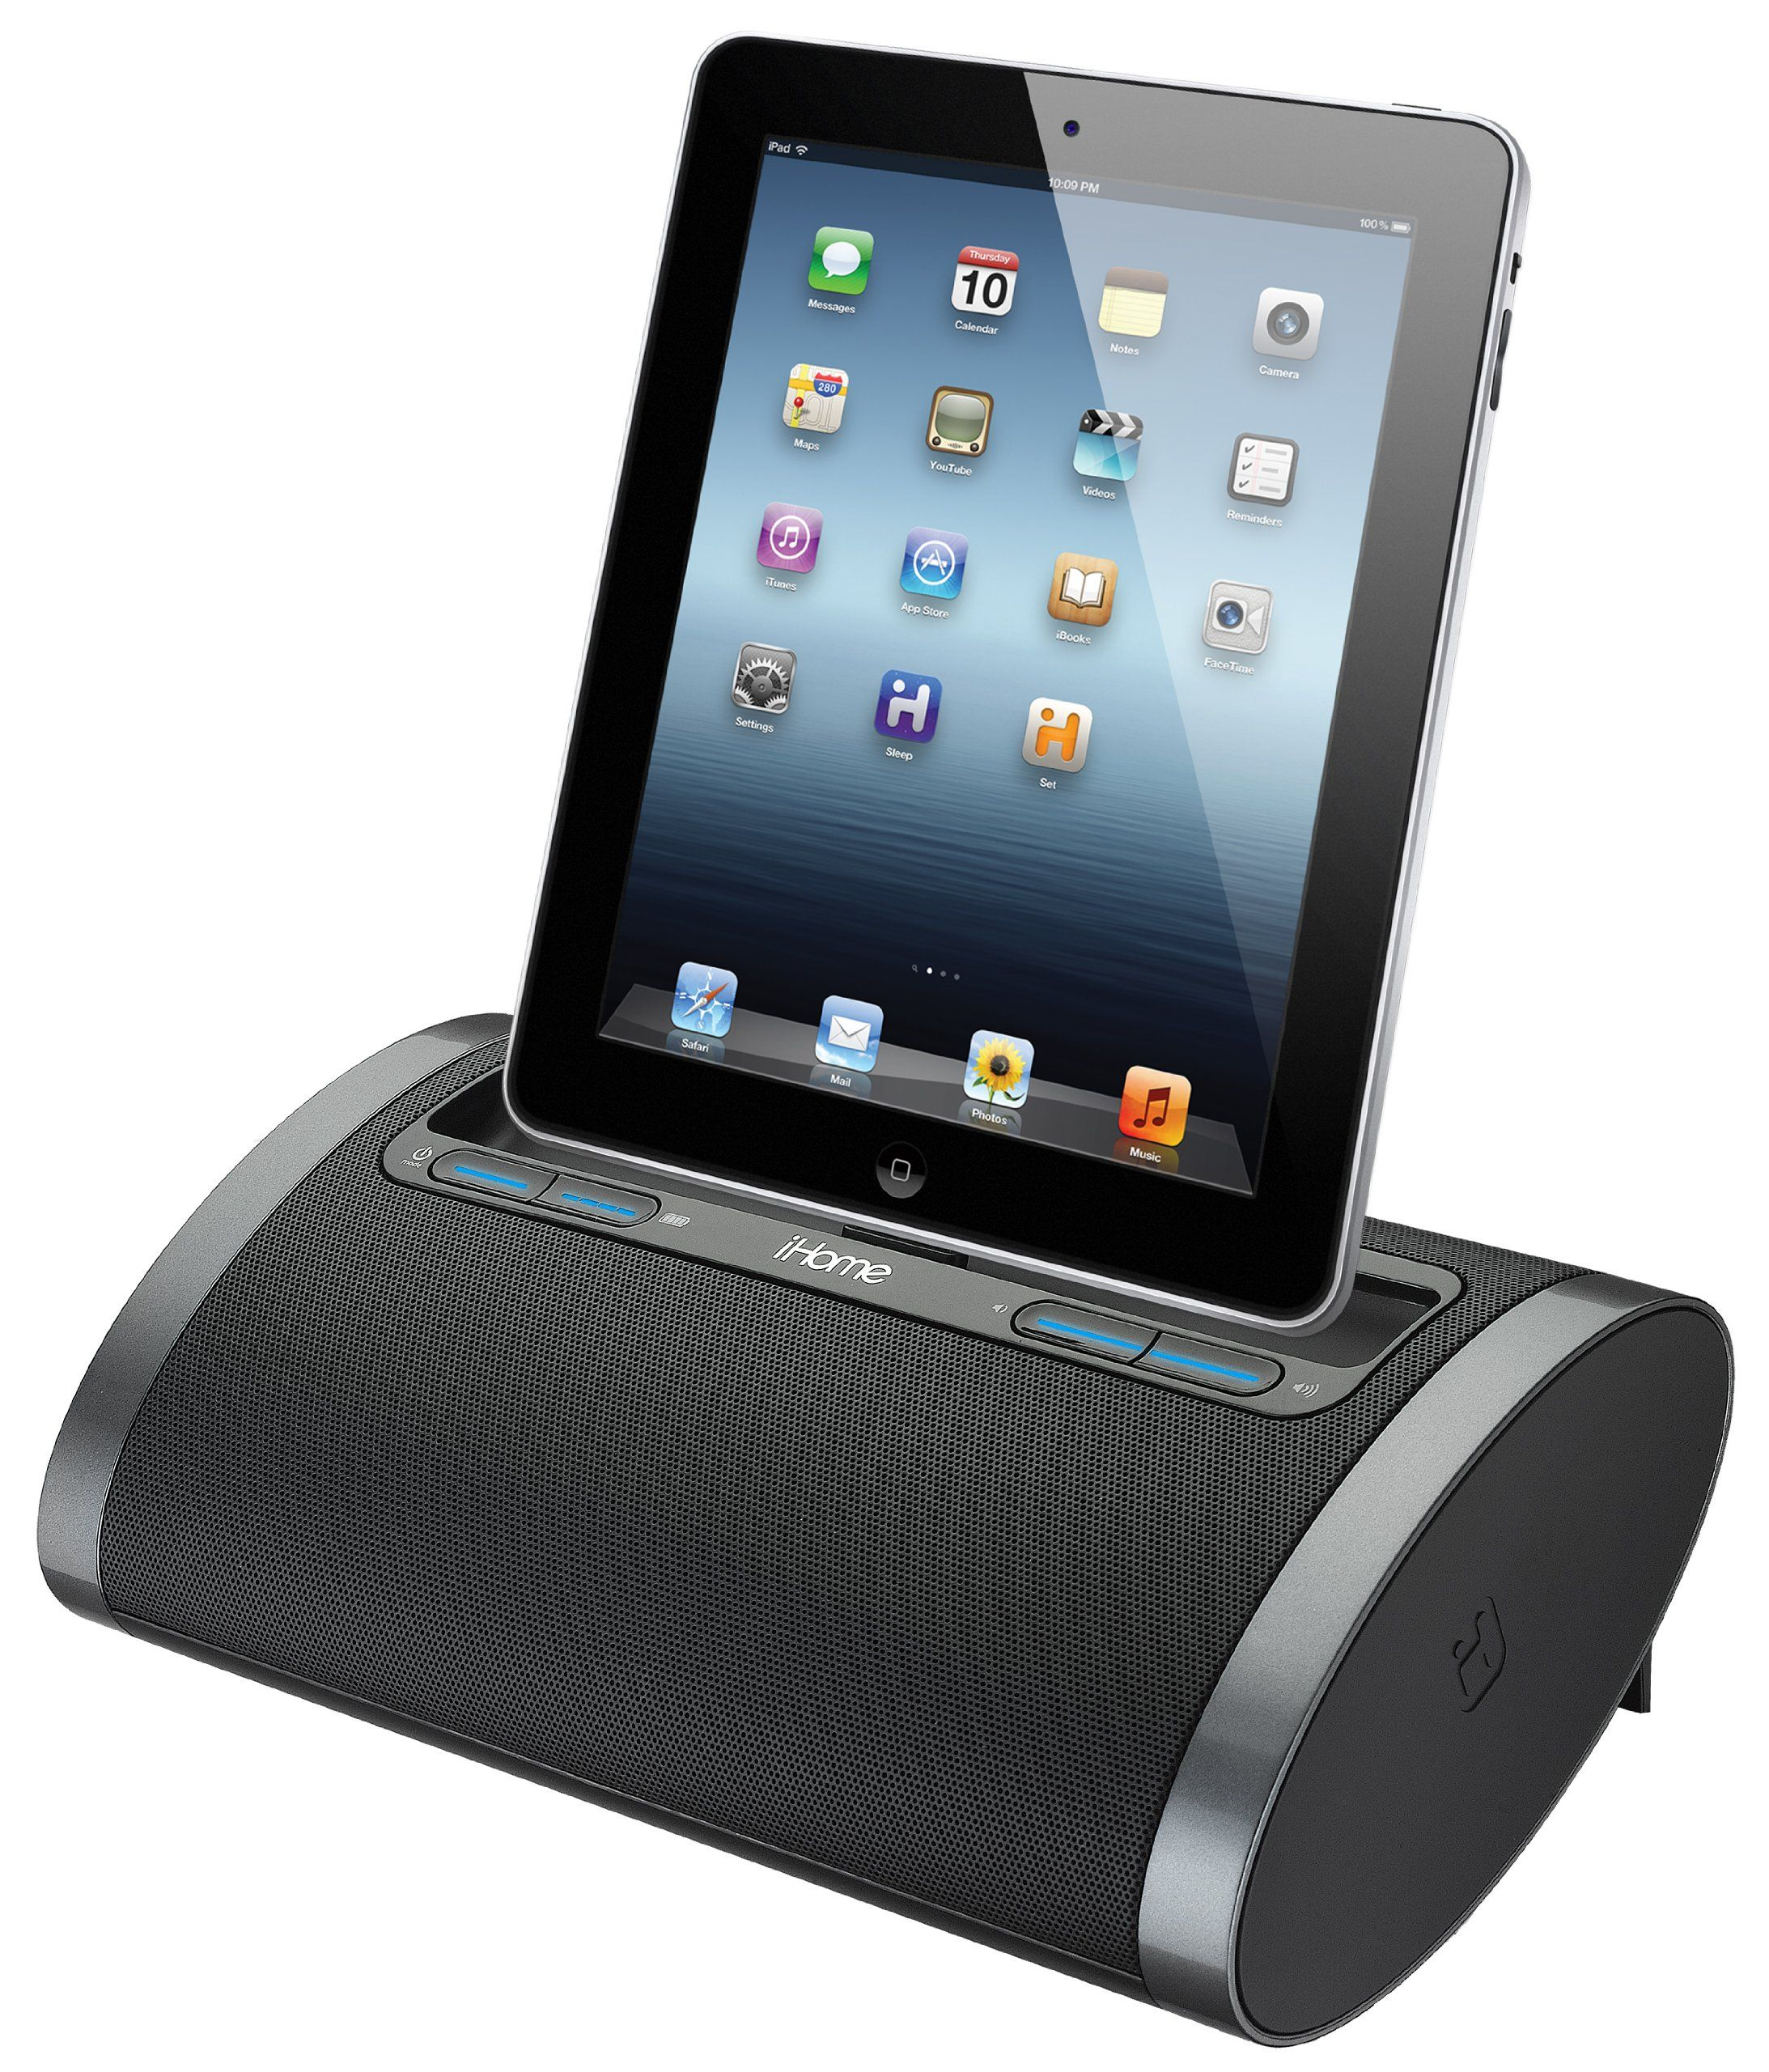 Ihome idl48bc dual charging portable rechargeable speaker with ihome dual charging portable rechargeable speaker with lightning dock and usb chargeplay for ipad ipod and iphone and publicscrutiny Images